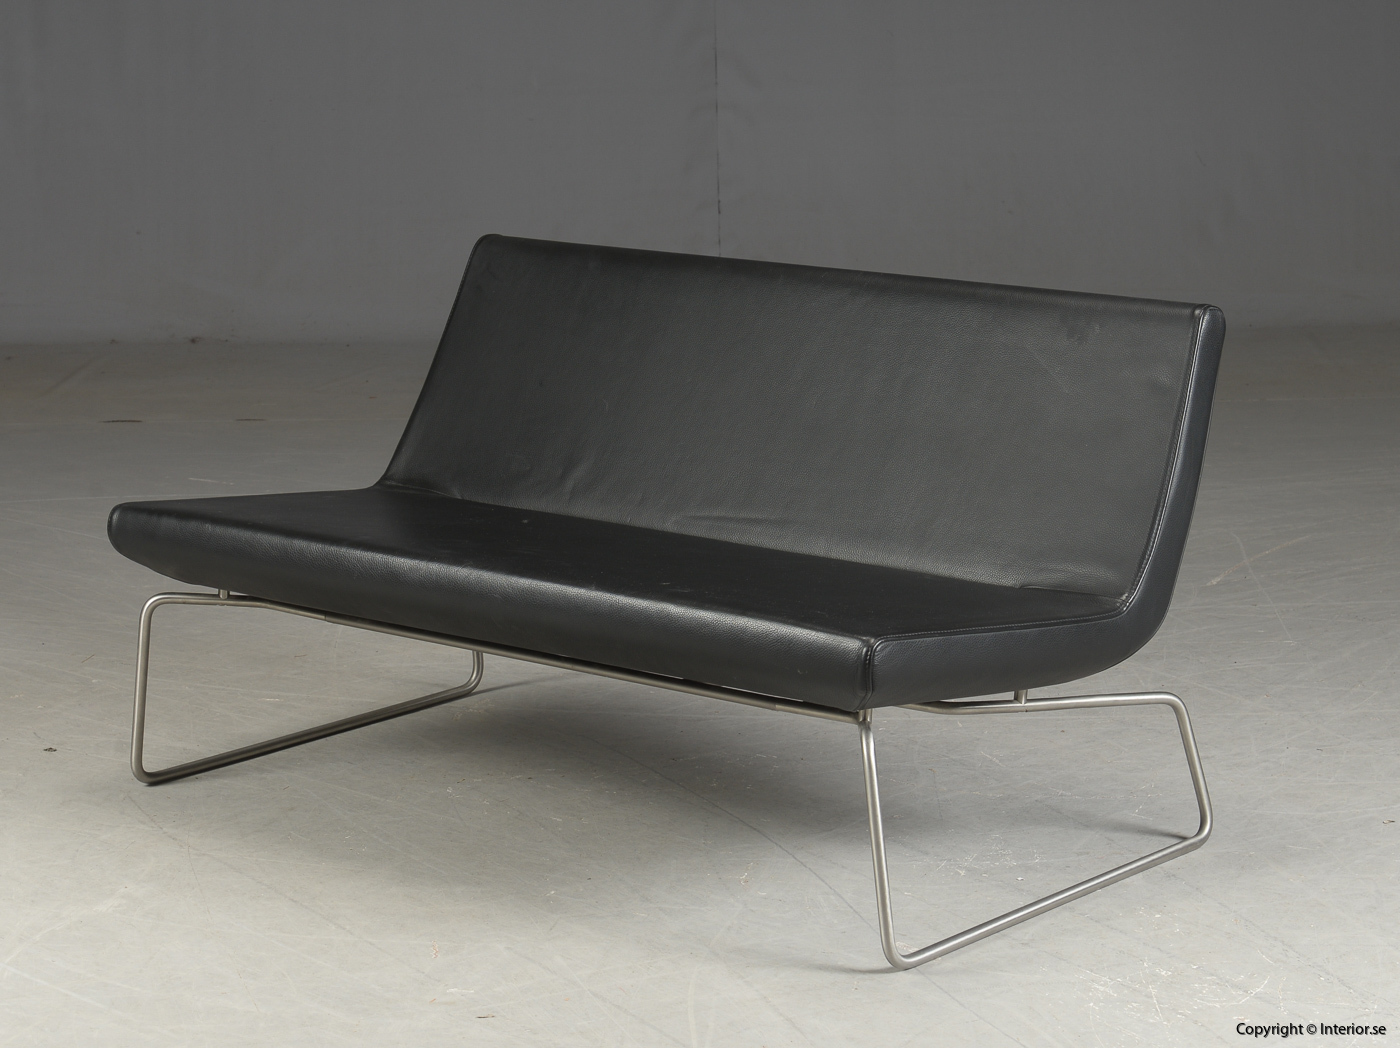 Soffa, Cappellini Superlight Sofa - Barber Osgerby